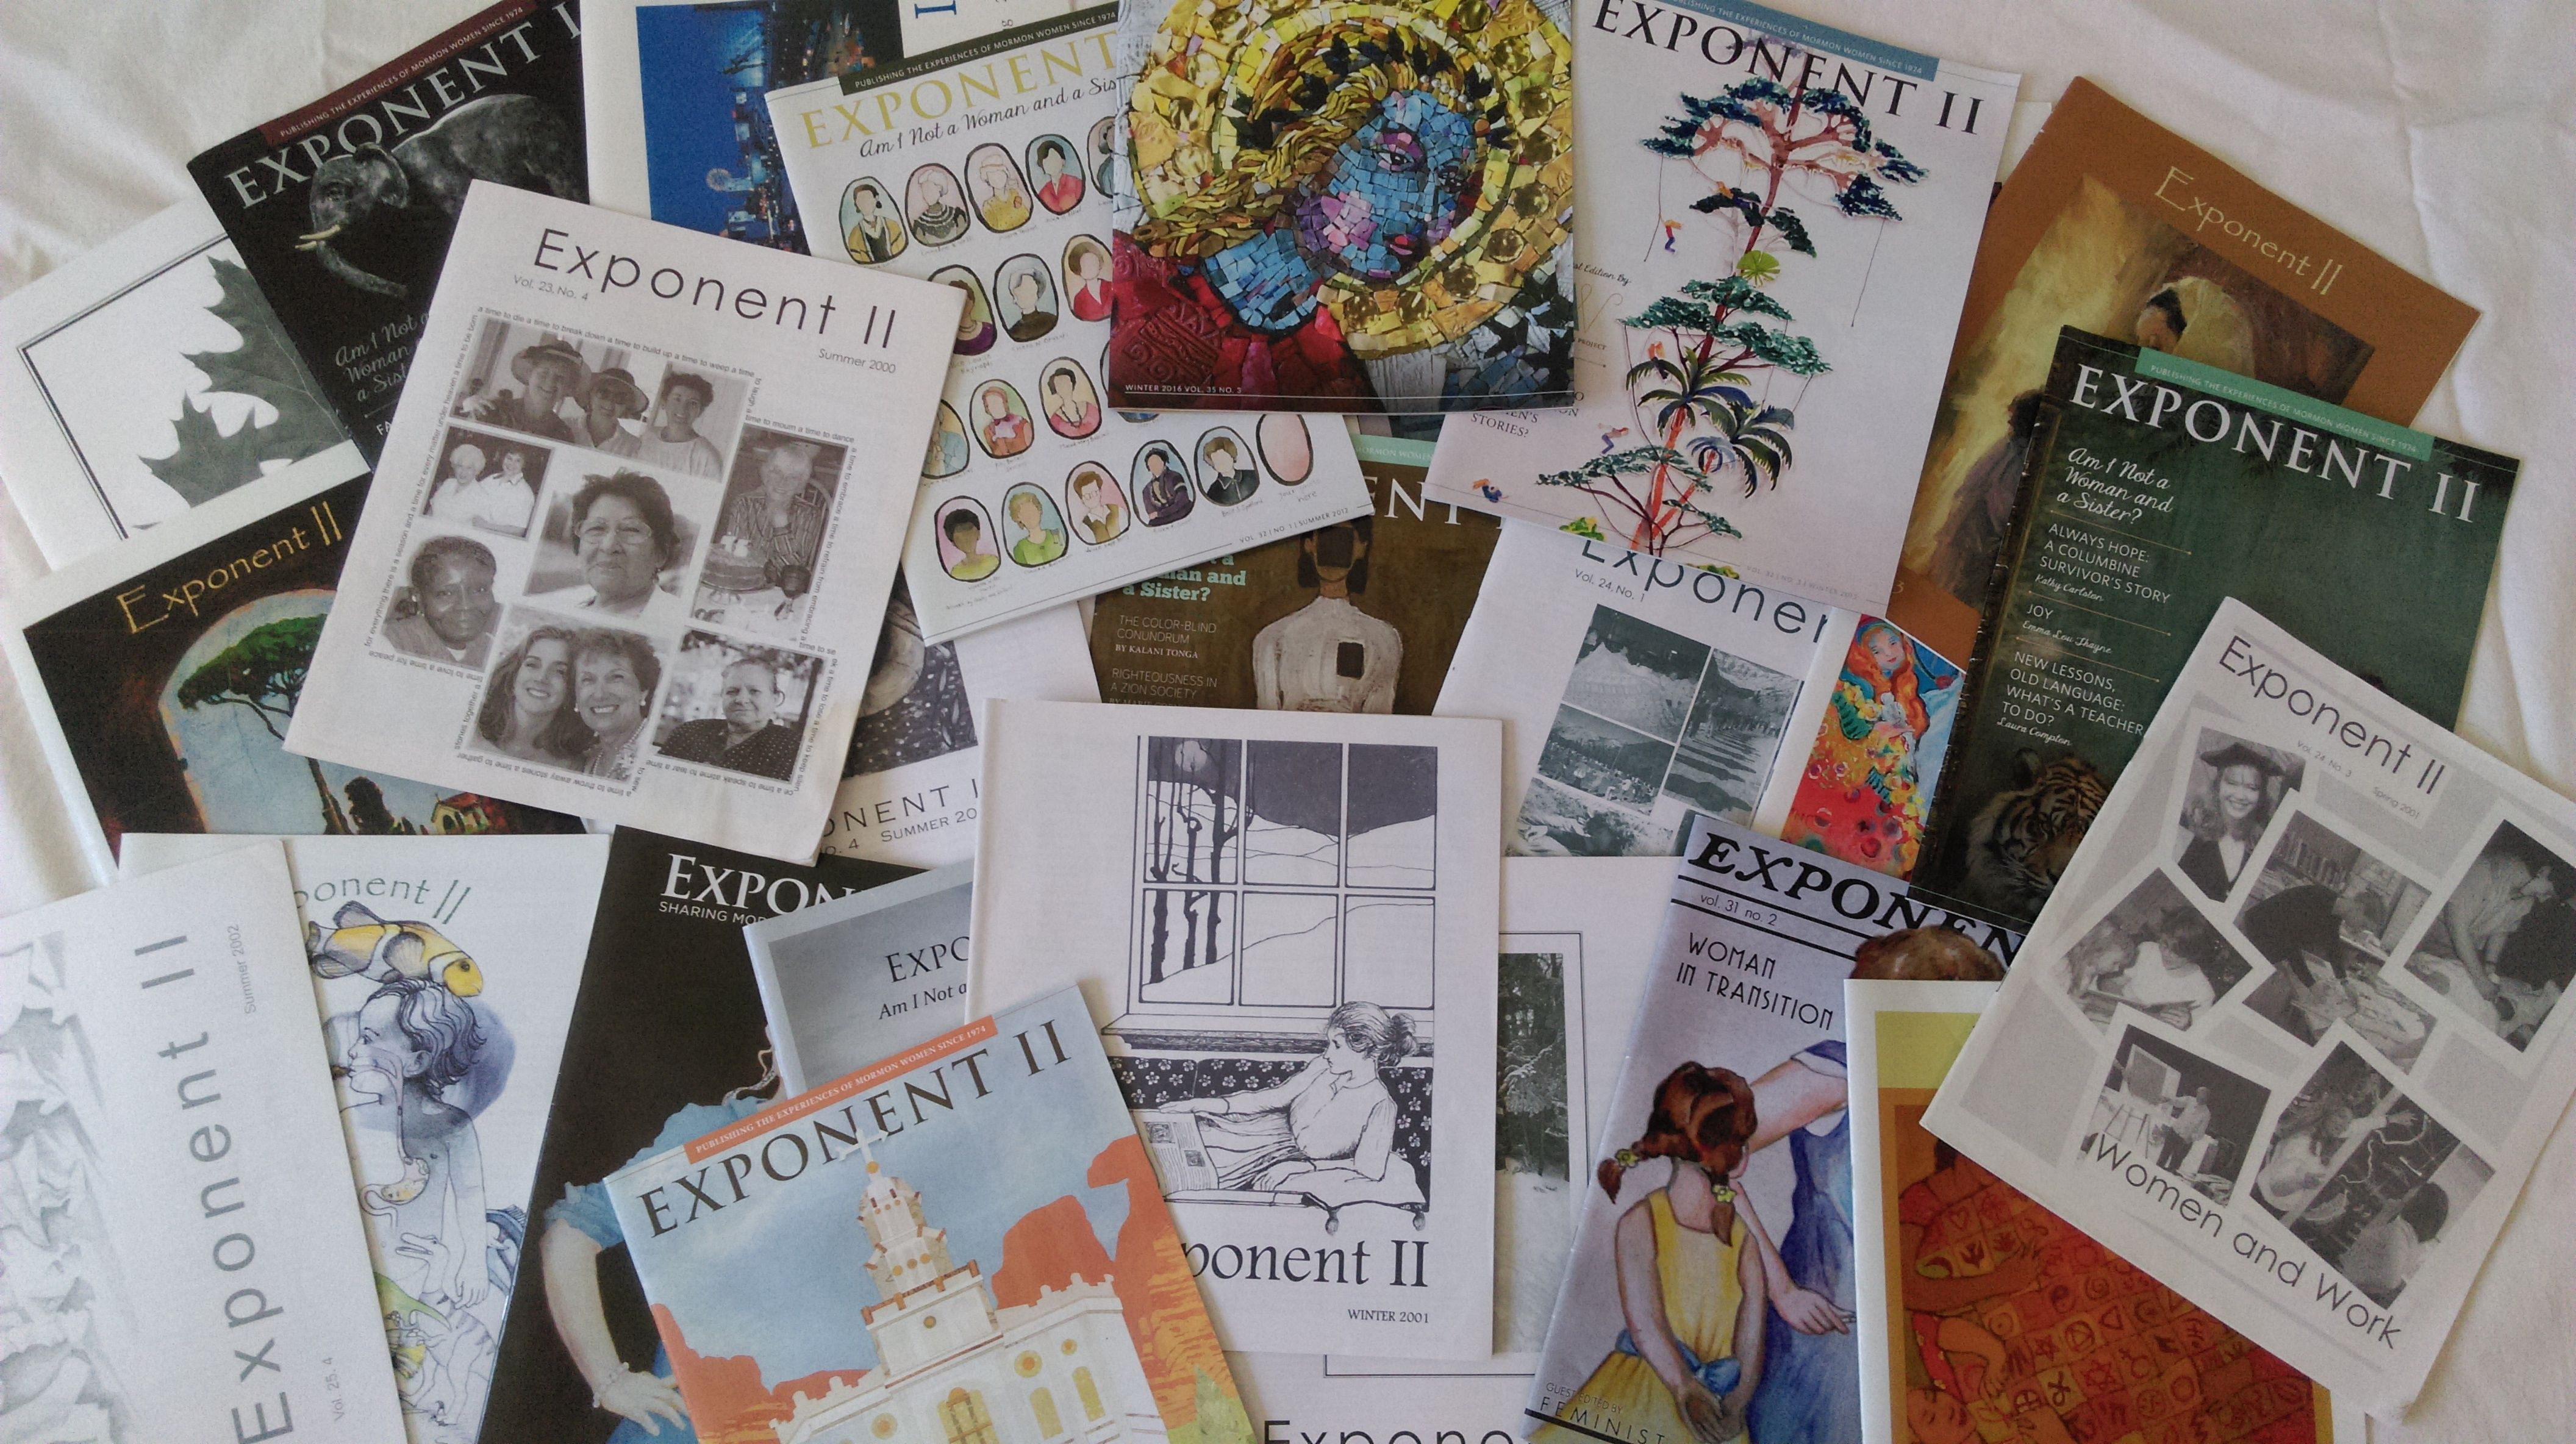 Mormon Feminist Daughters and the Fall Issue of Exponent